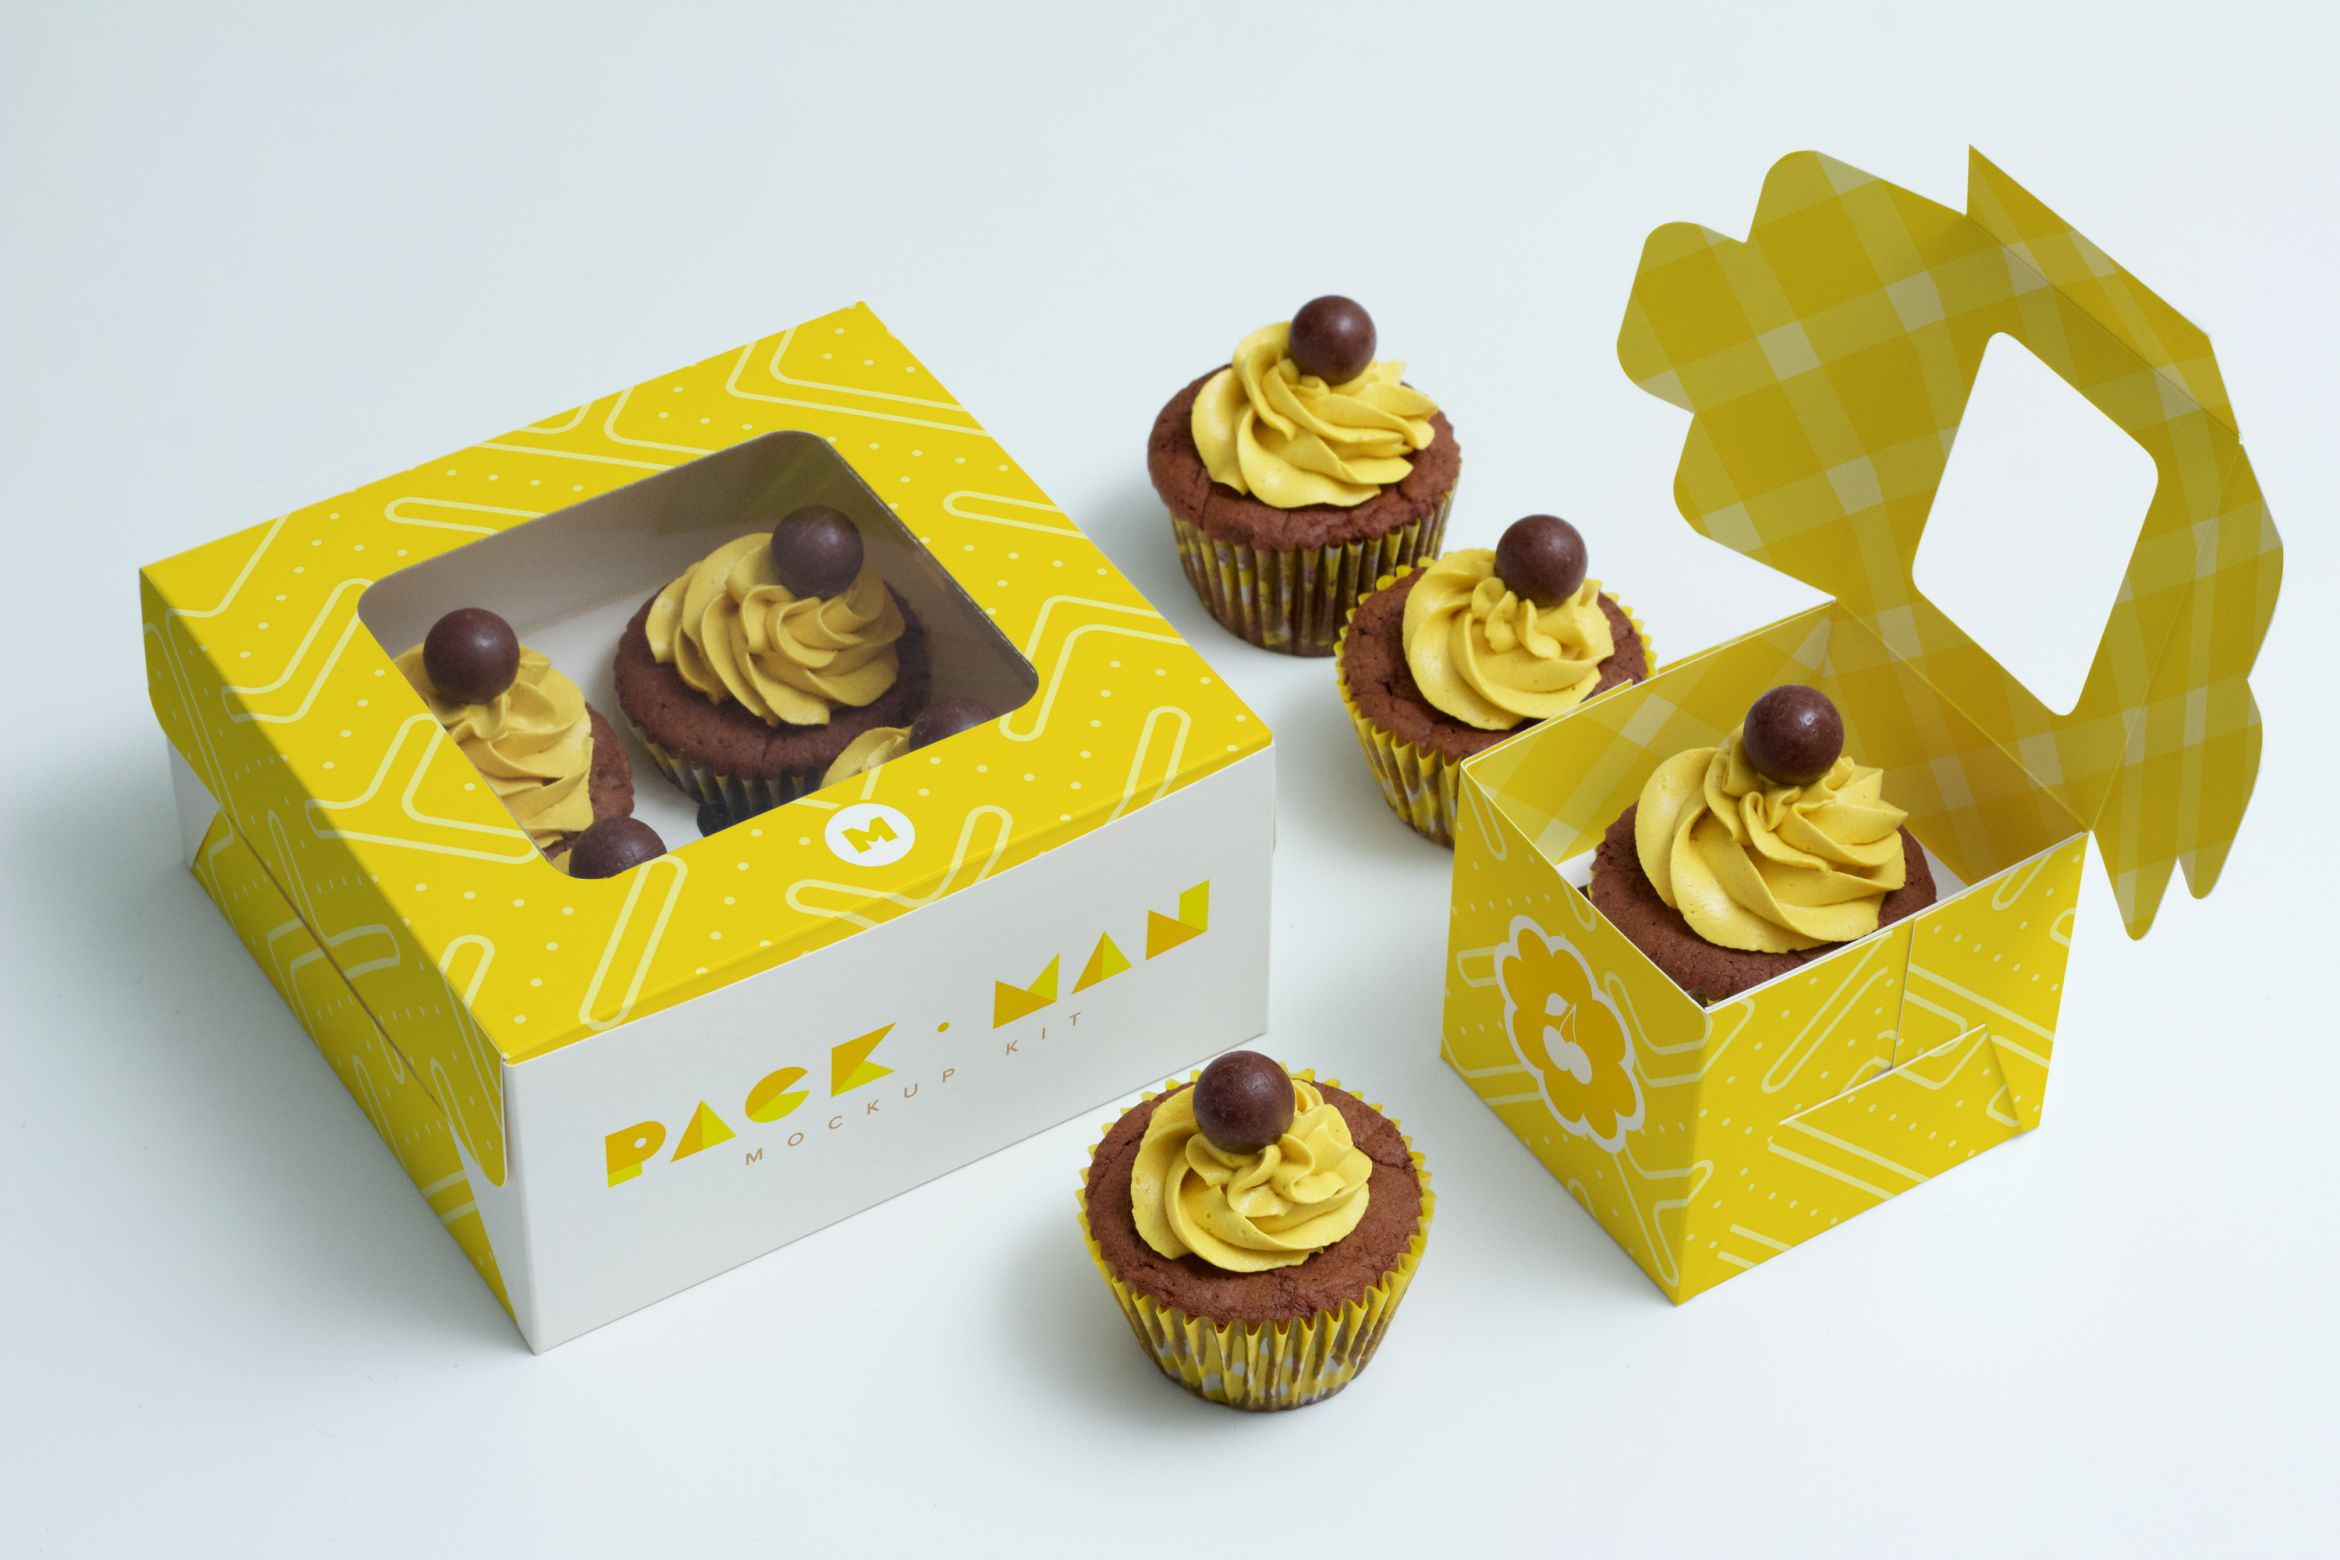 cupcake-boxes-01-1392db31a8851a7758be3cfc6188cb31